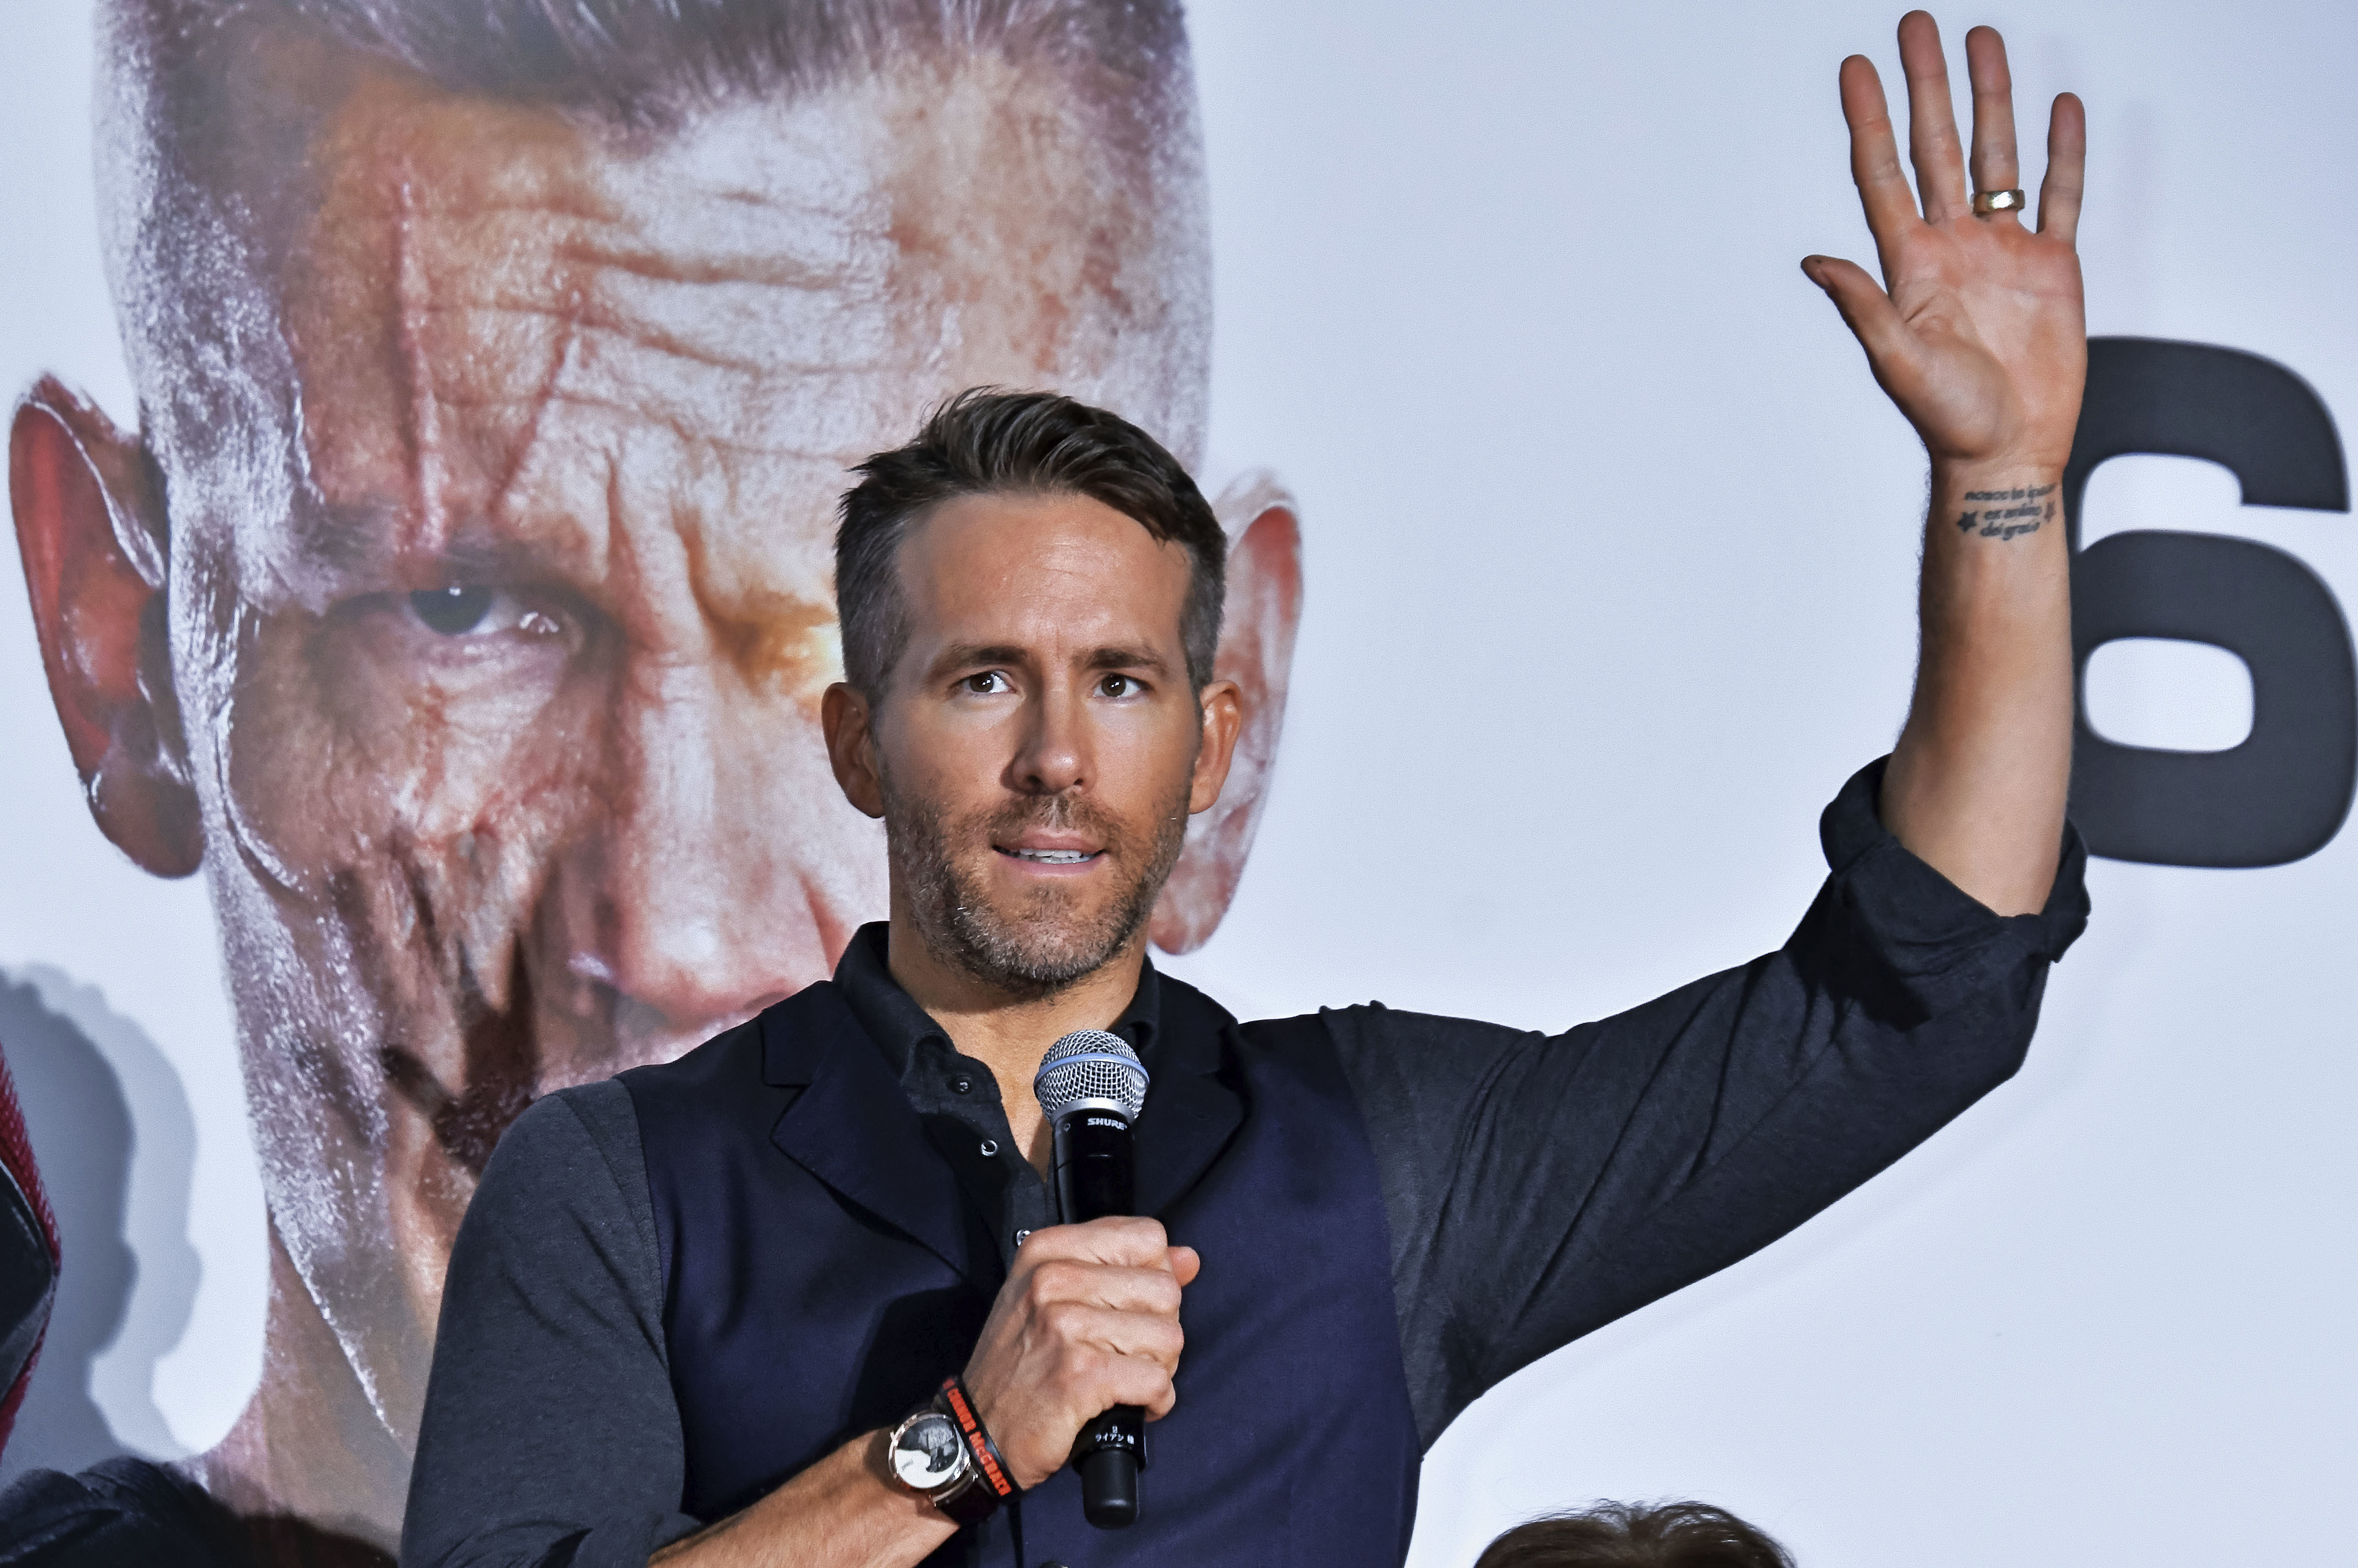 Ryan Reynolds goes after Hugh Jackman in mock political ad